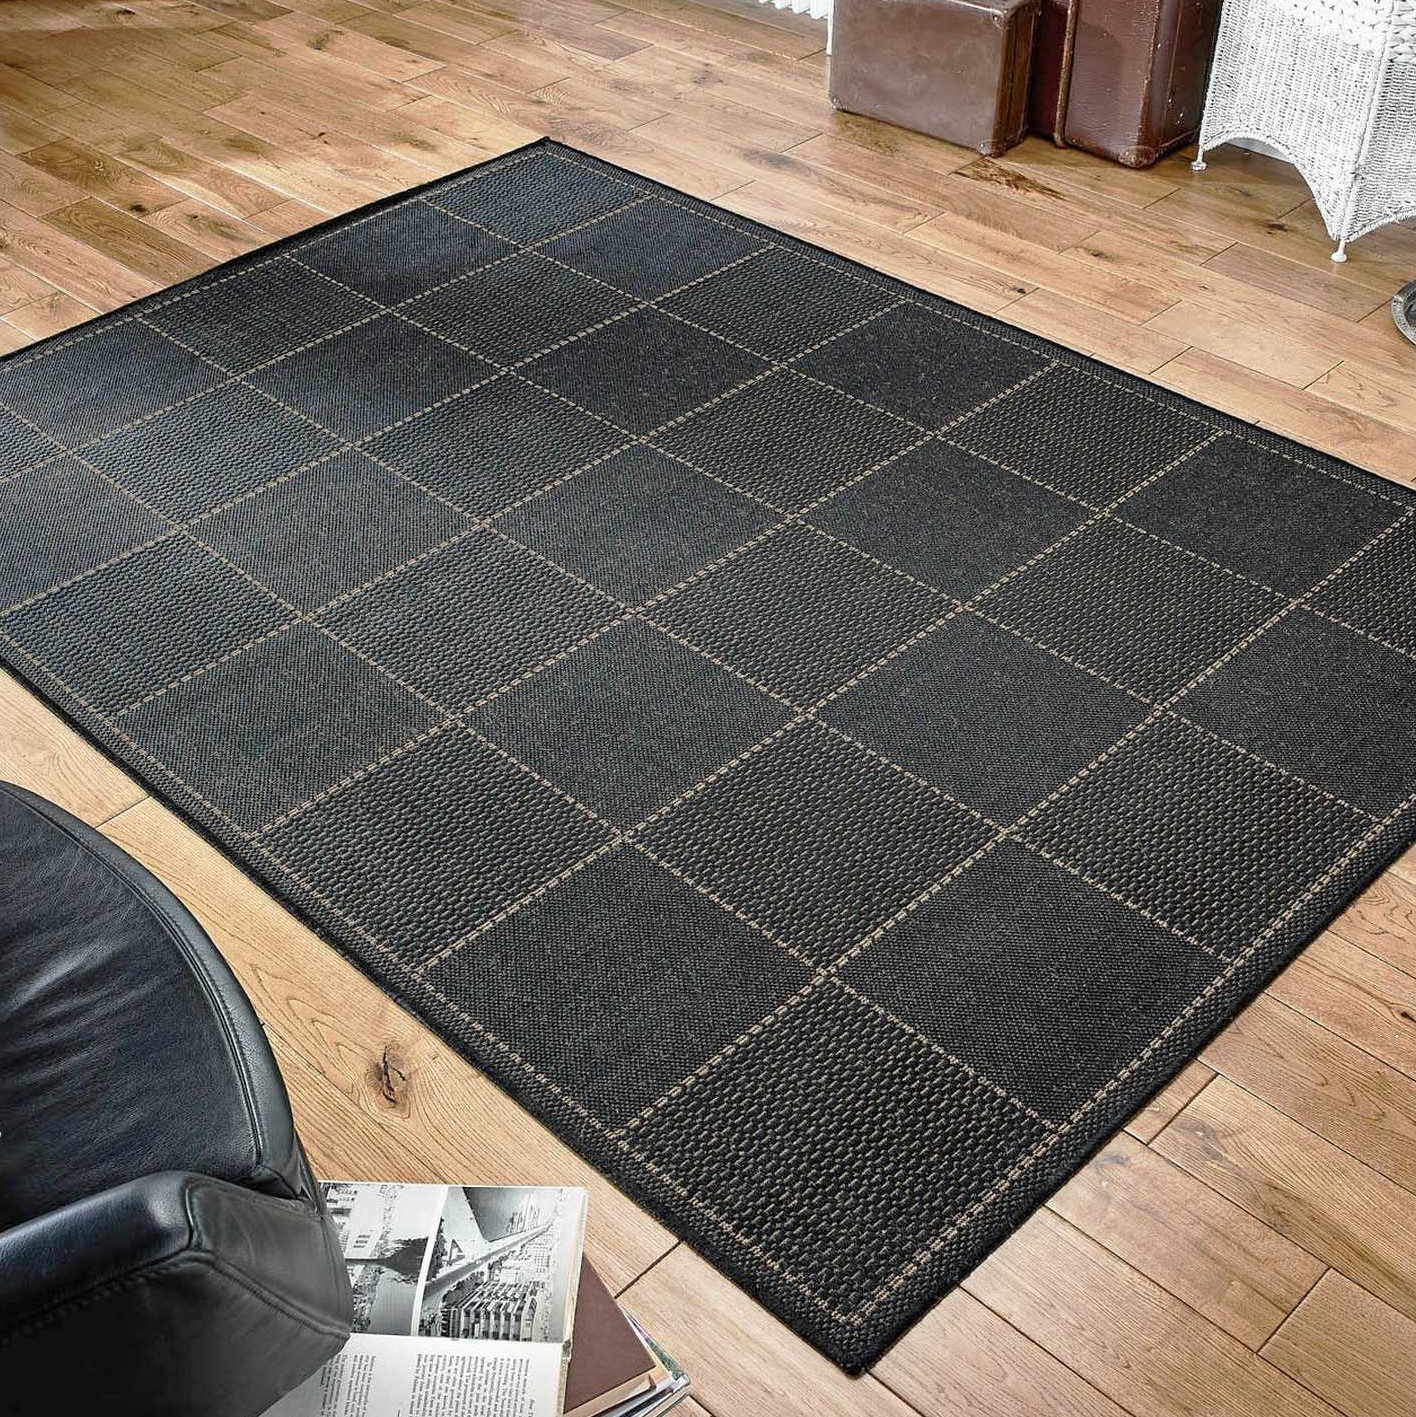 Super Sisalo Anti Slip Kitchen Rugs In Black Free Uk